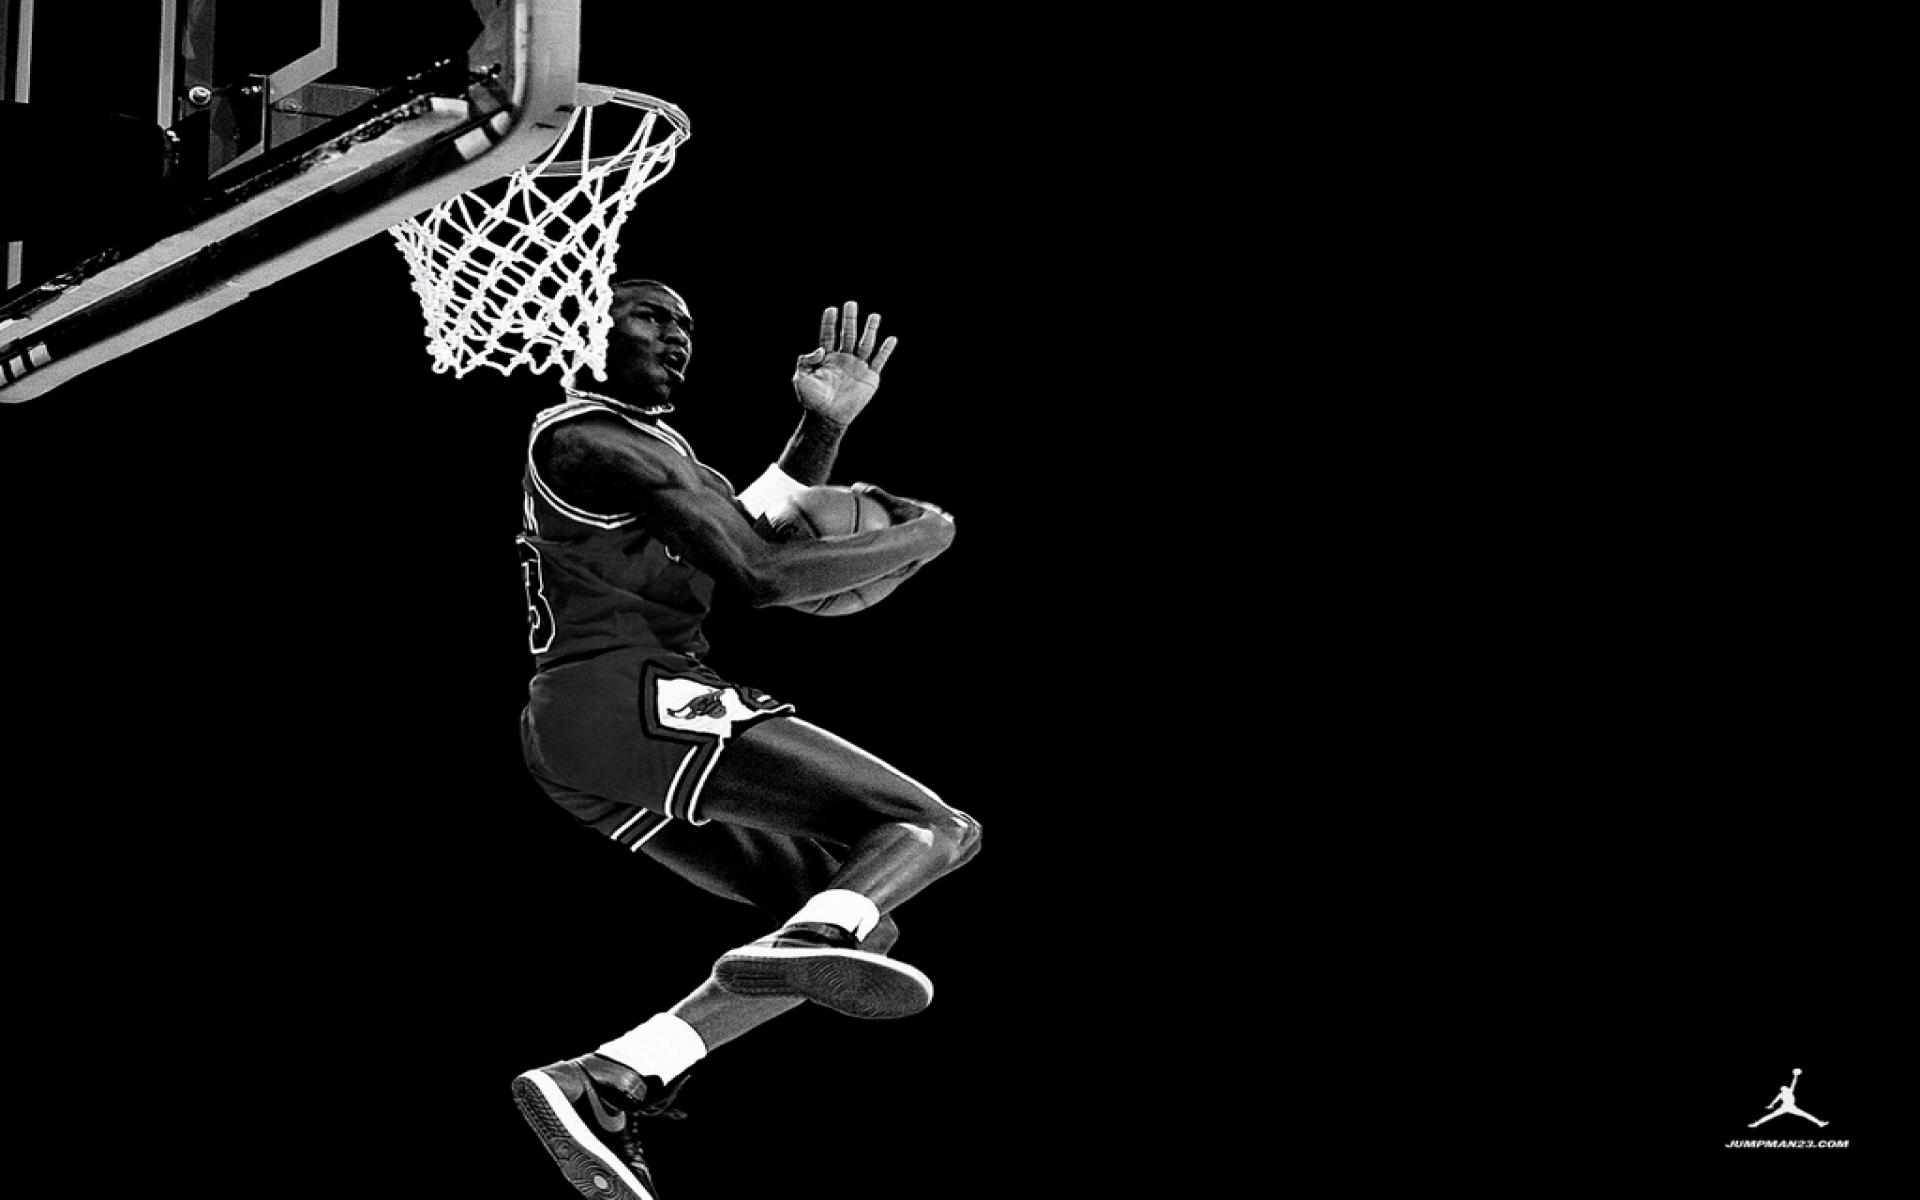 Jordan Shoes Wallpaper HD Wallpapers Backgrounds Of Your Choice 1920x1200